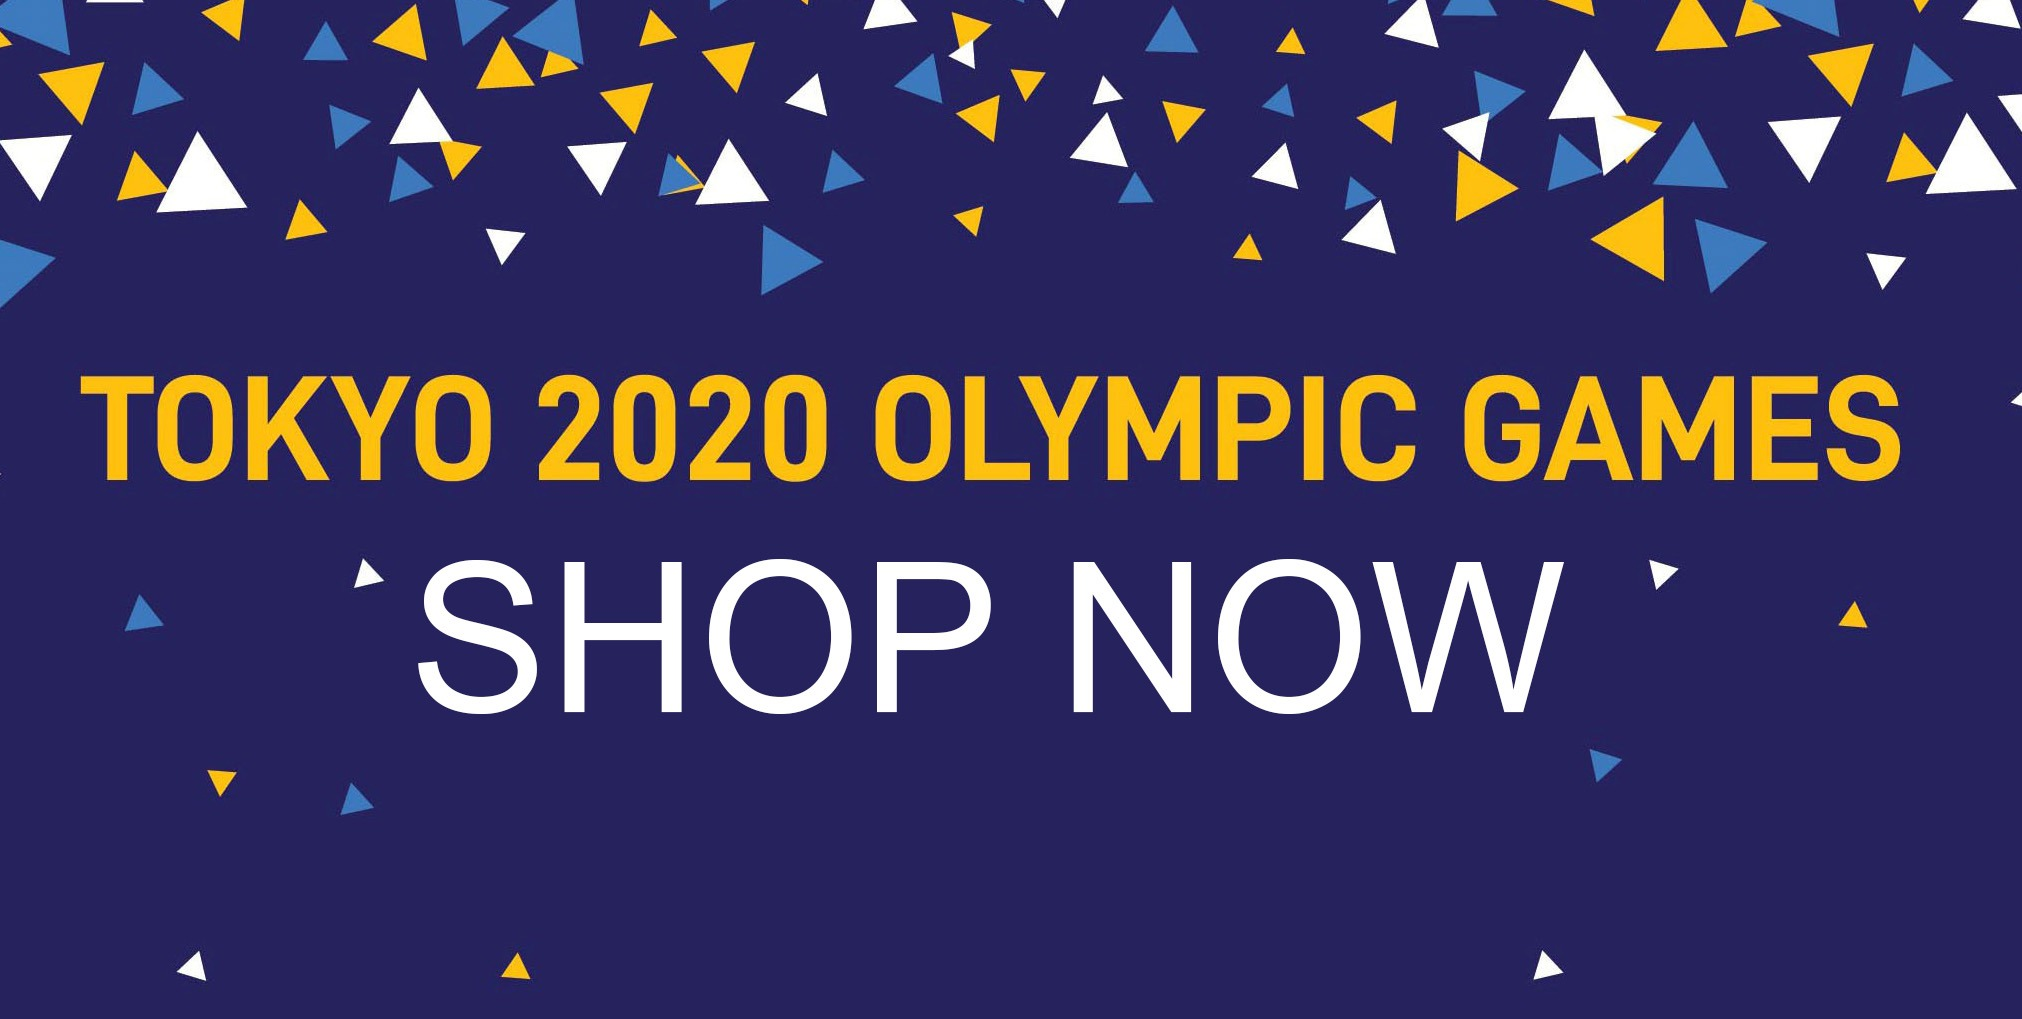 Games For Gold June 2020.Tokyo 2020 Olympic Games Kingdom Sports Group